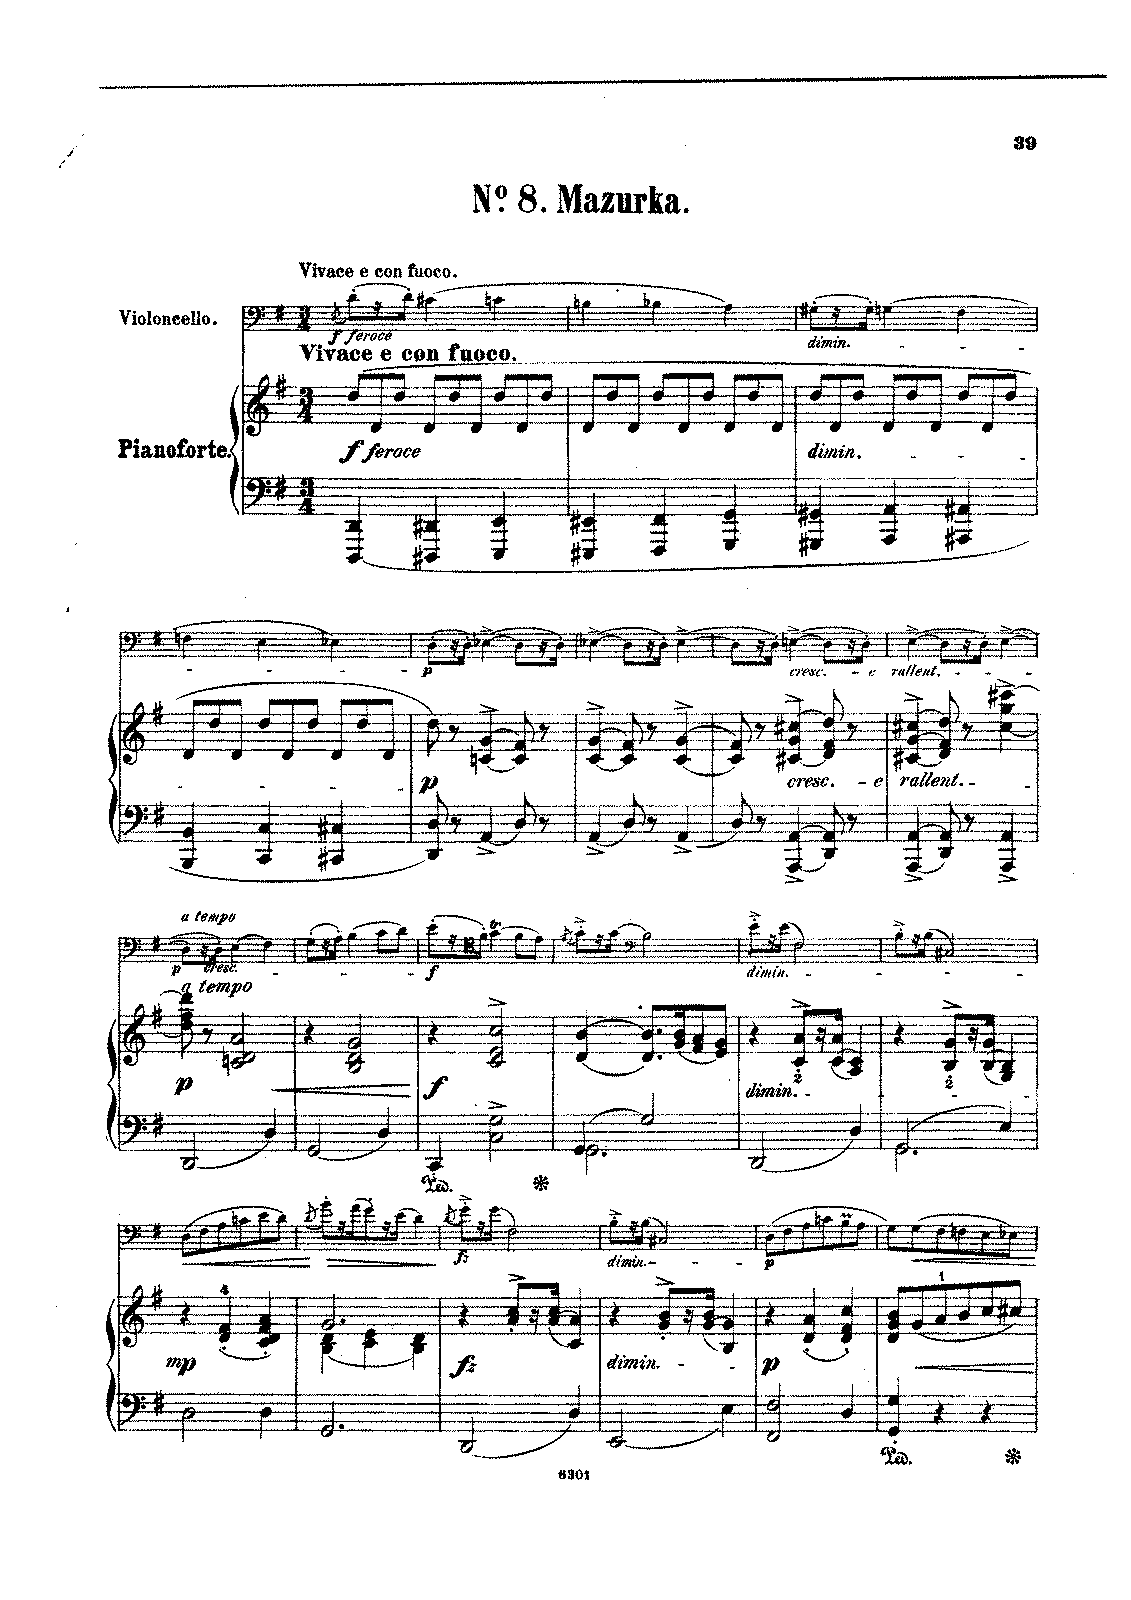 PMLP02289-Chopin - 8a Mazurka Op7 No1 for Cello and Piano (Grutzmacher) score.pdf